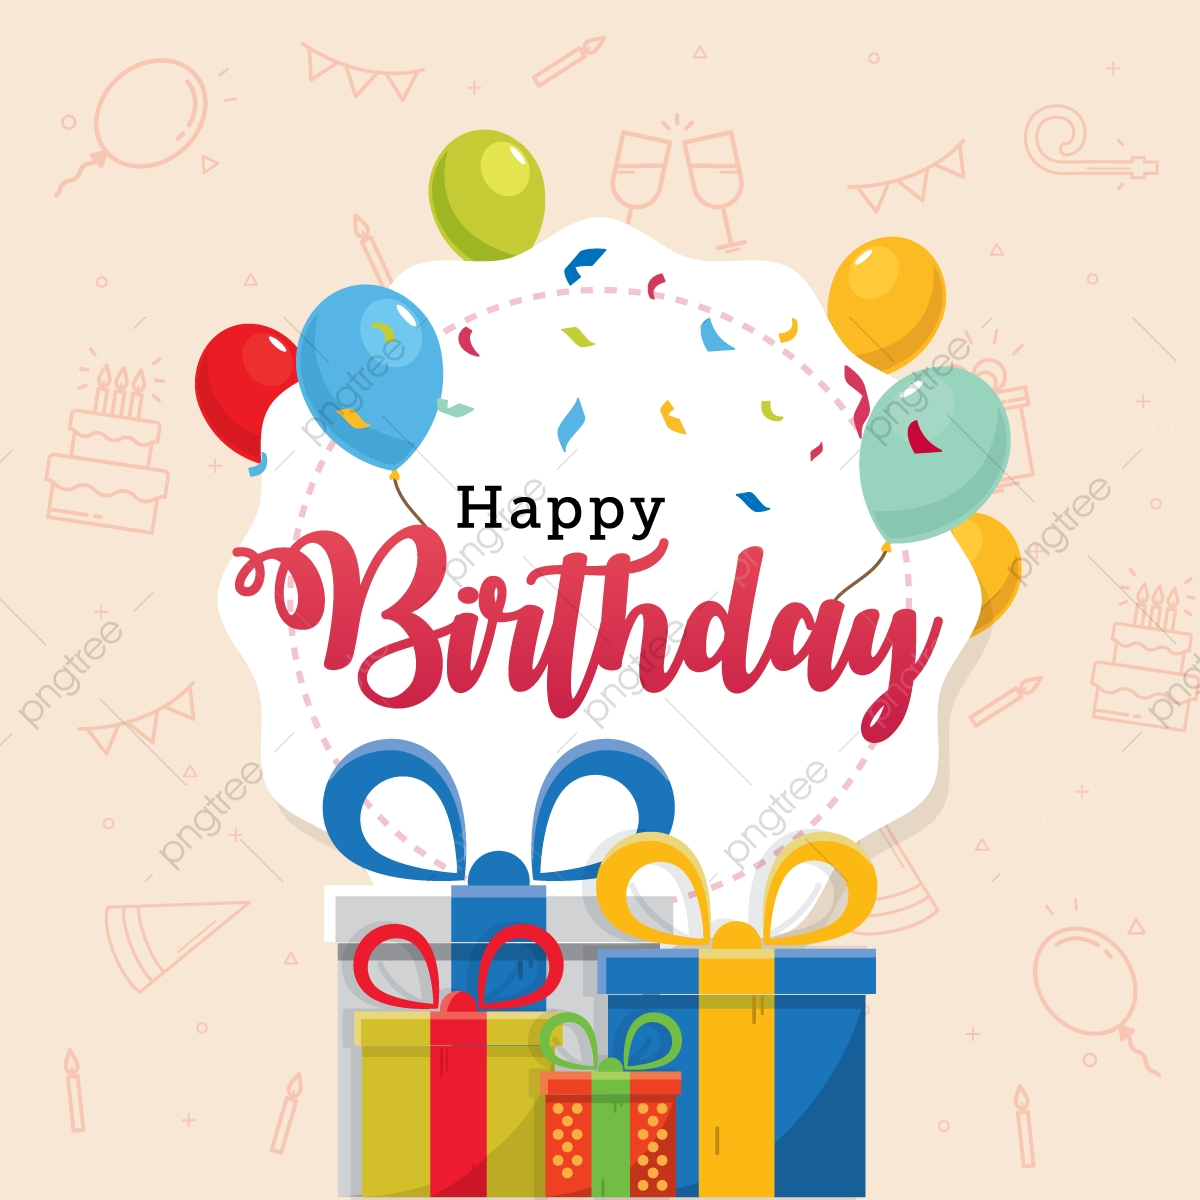 Happy Birthday Typography Vector Design Template For